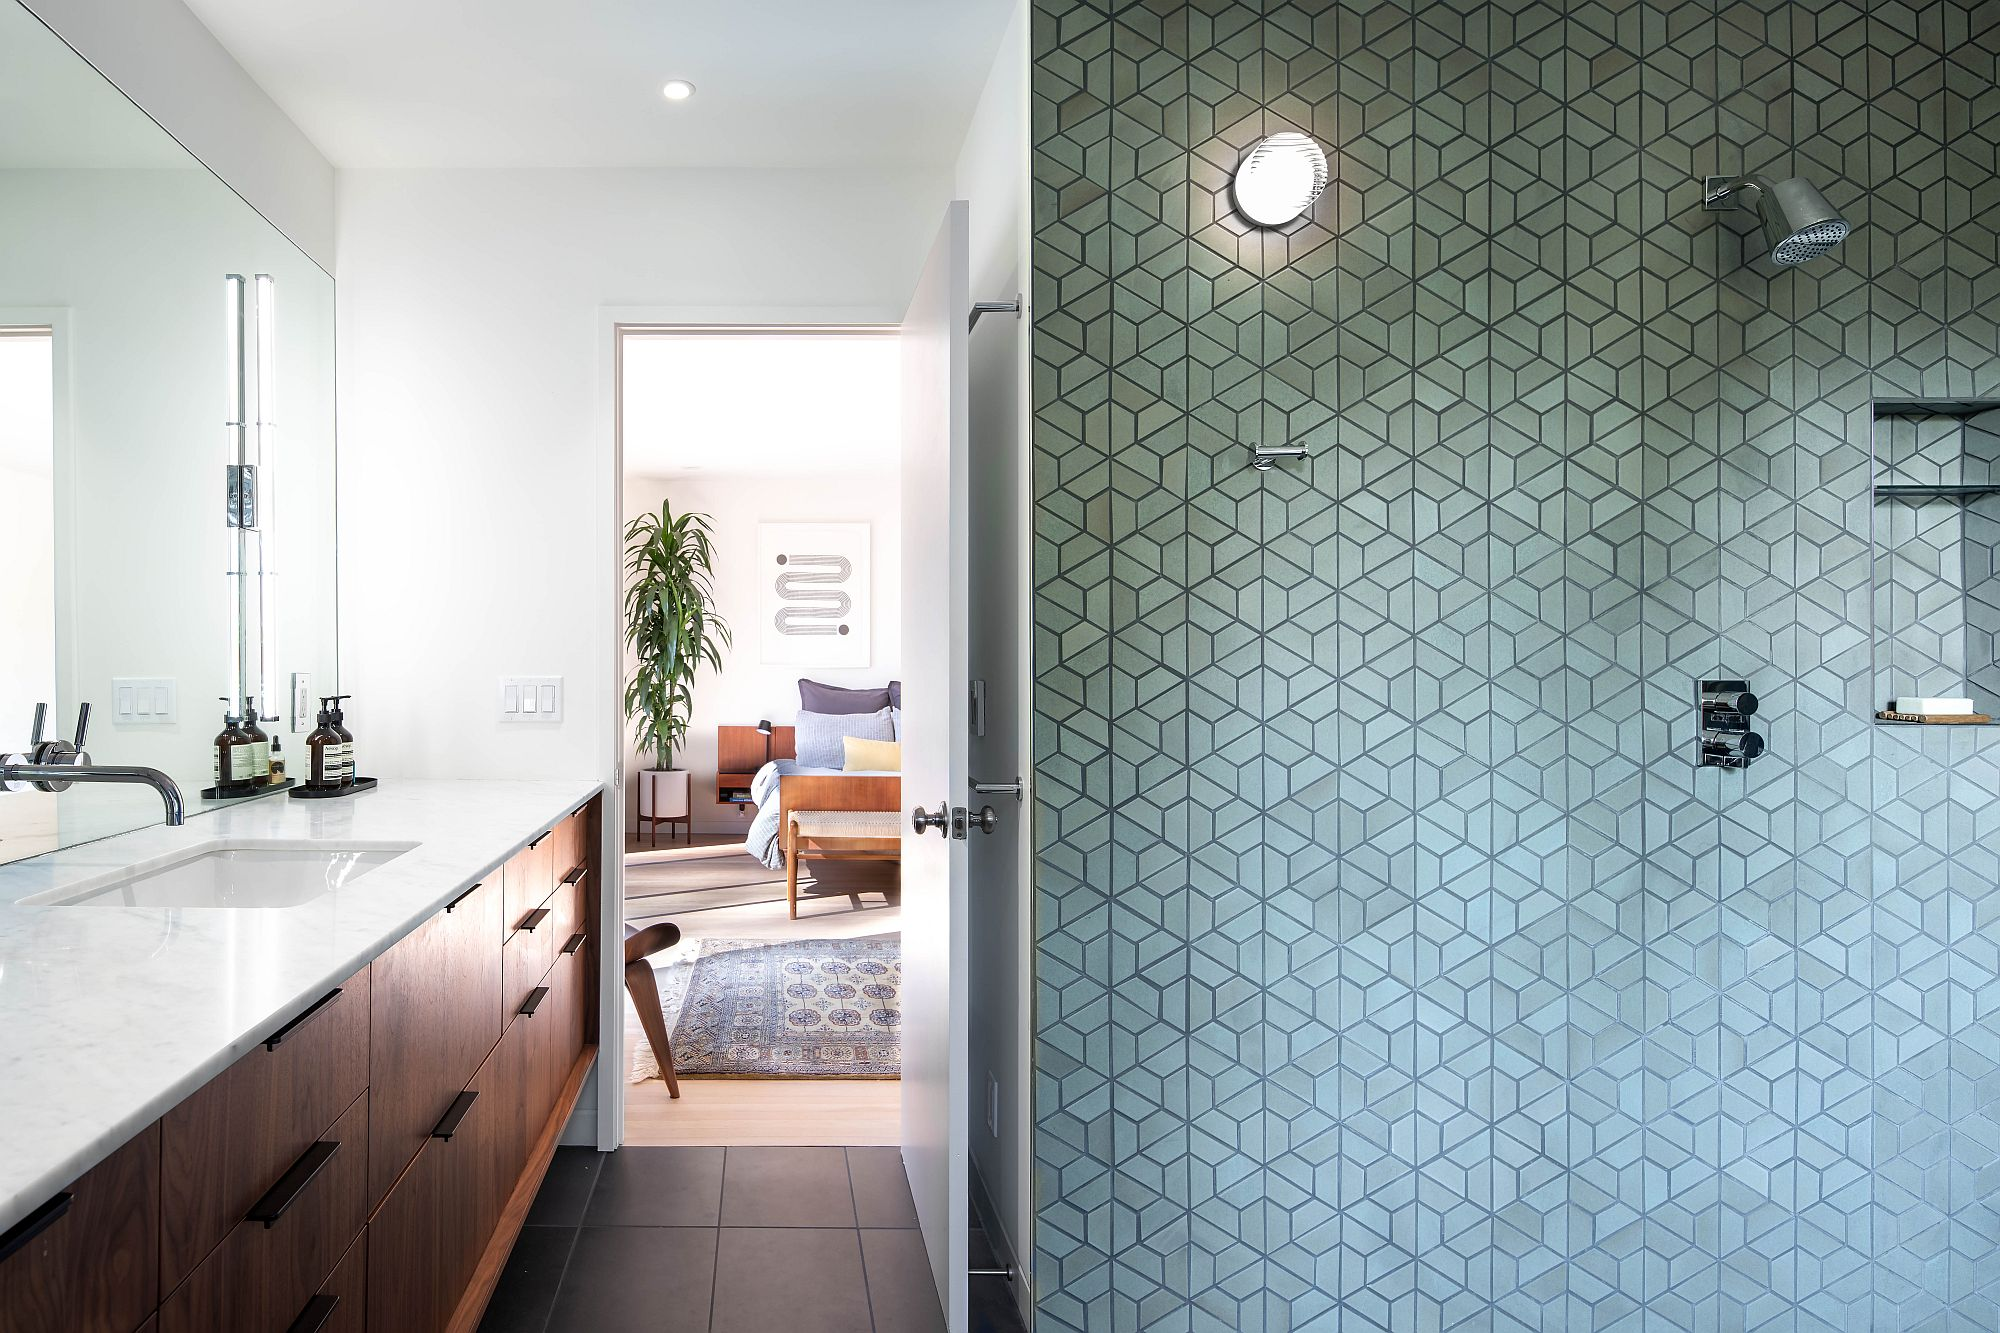 Dashing-makeover-of-the-bathrooms-with-custom-sink-design-and-a-smart-backdrop